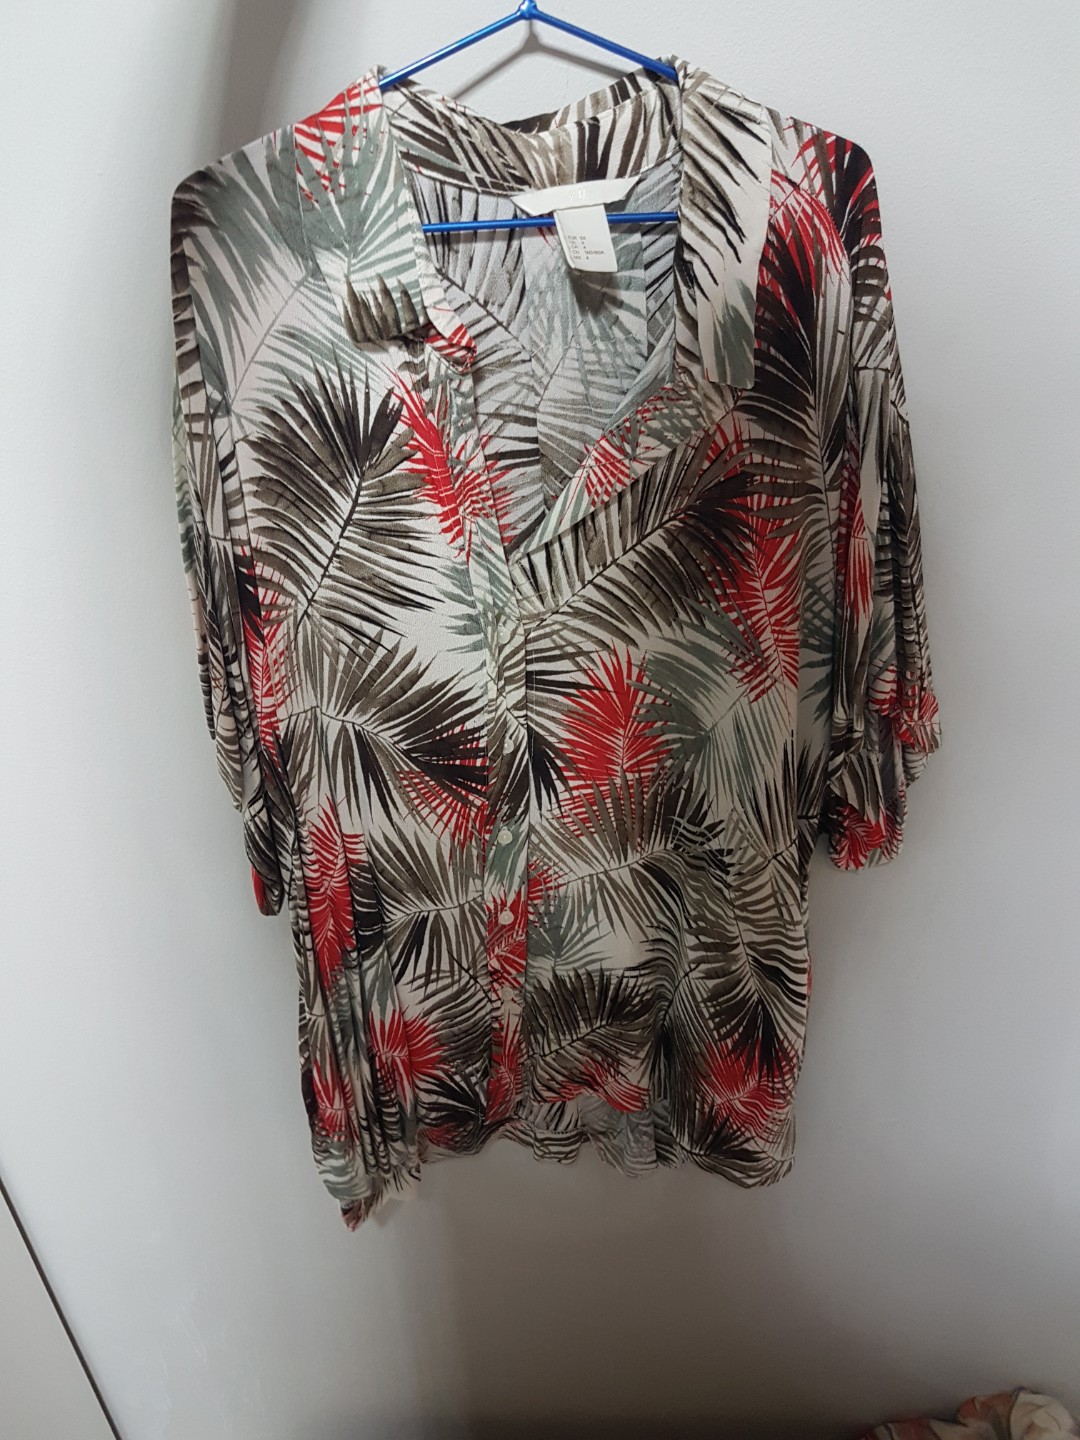 d6f011a1 Tropical Top from H&M, Women's Fashion, Clothes, Tops on Carousell